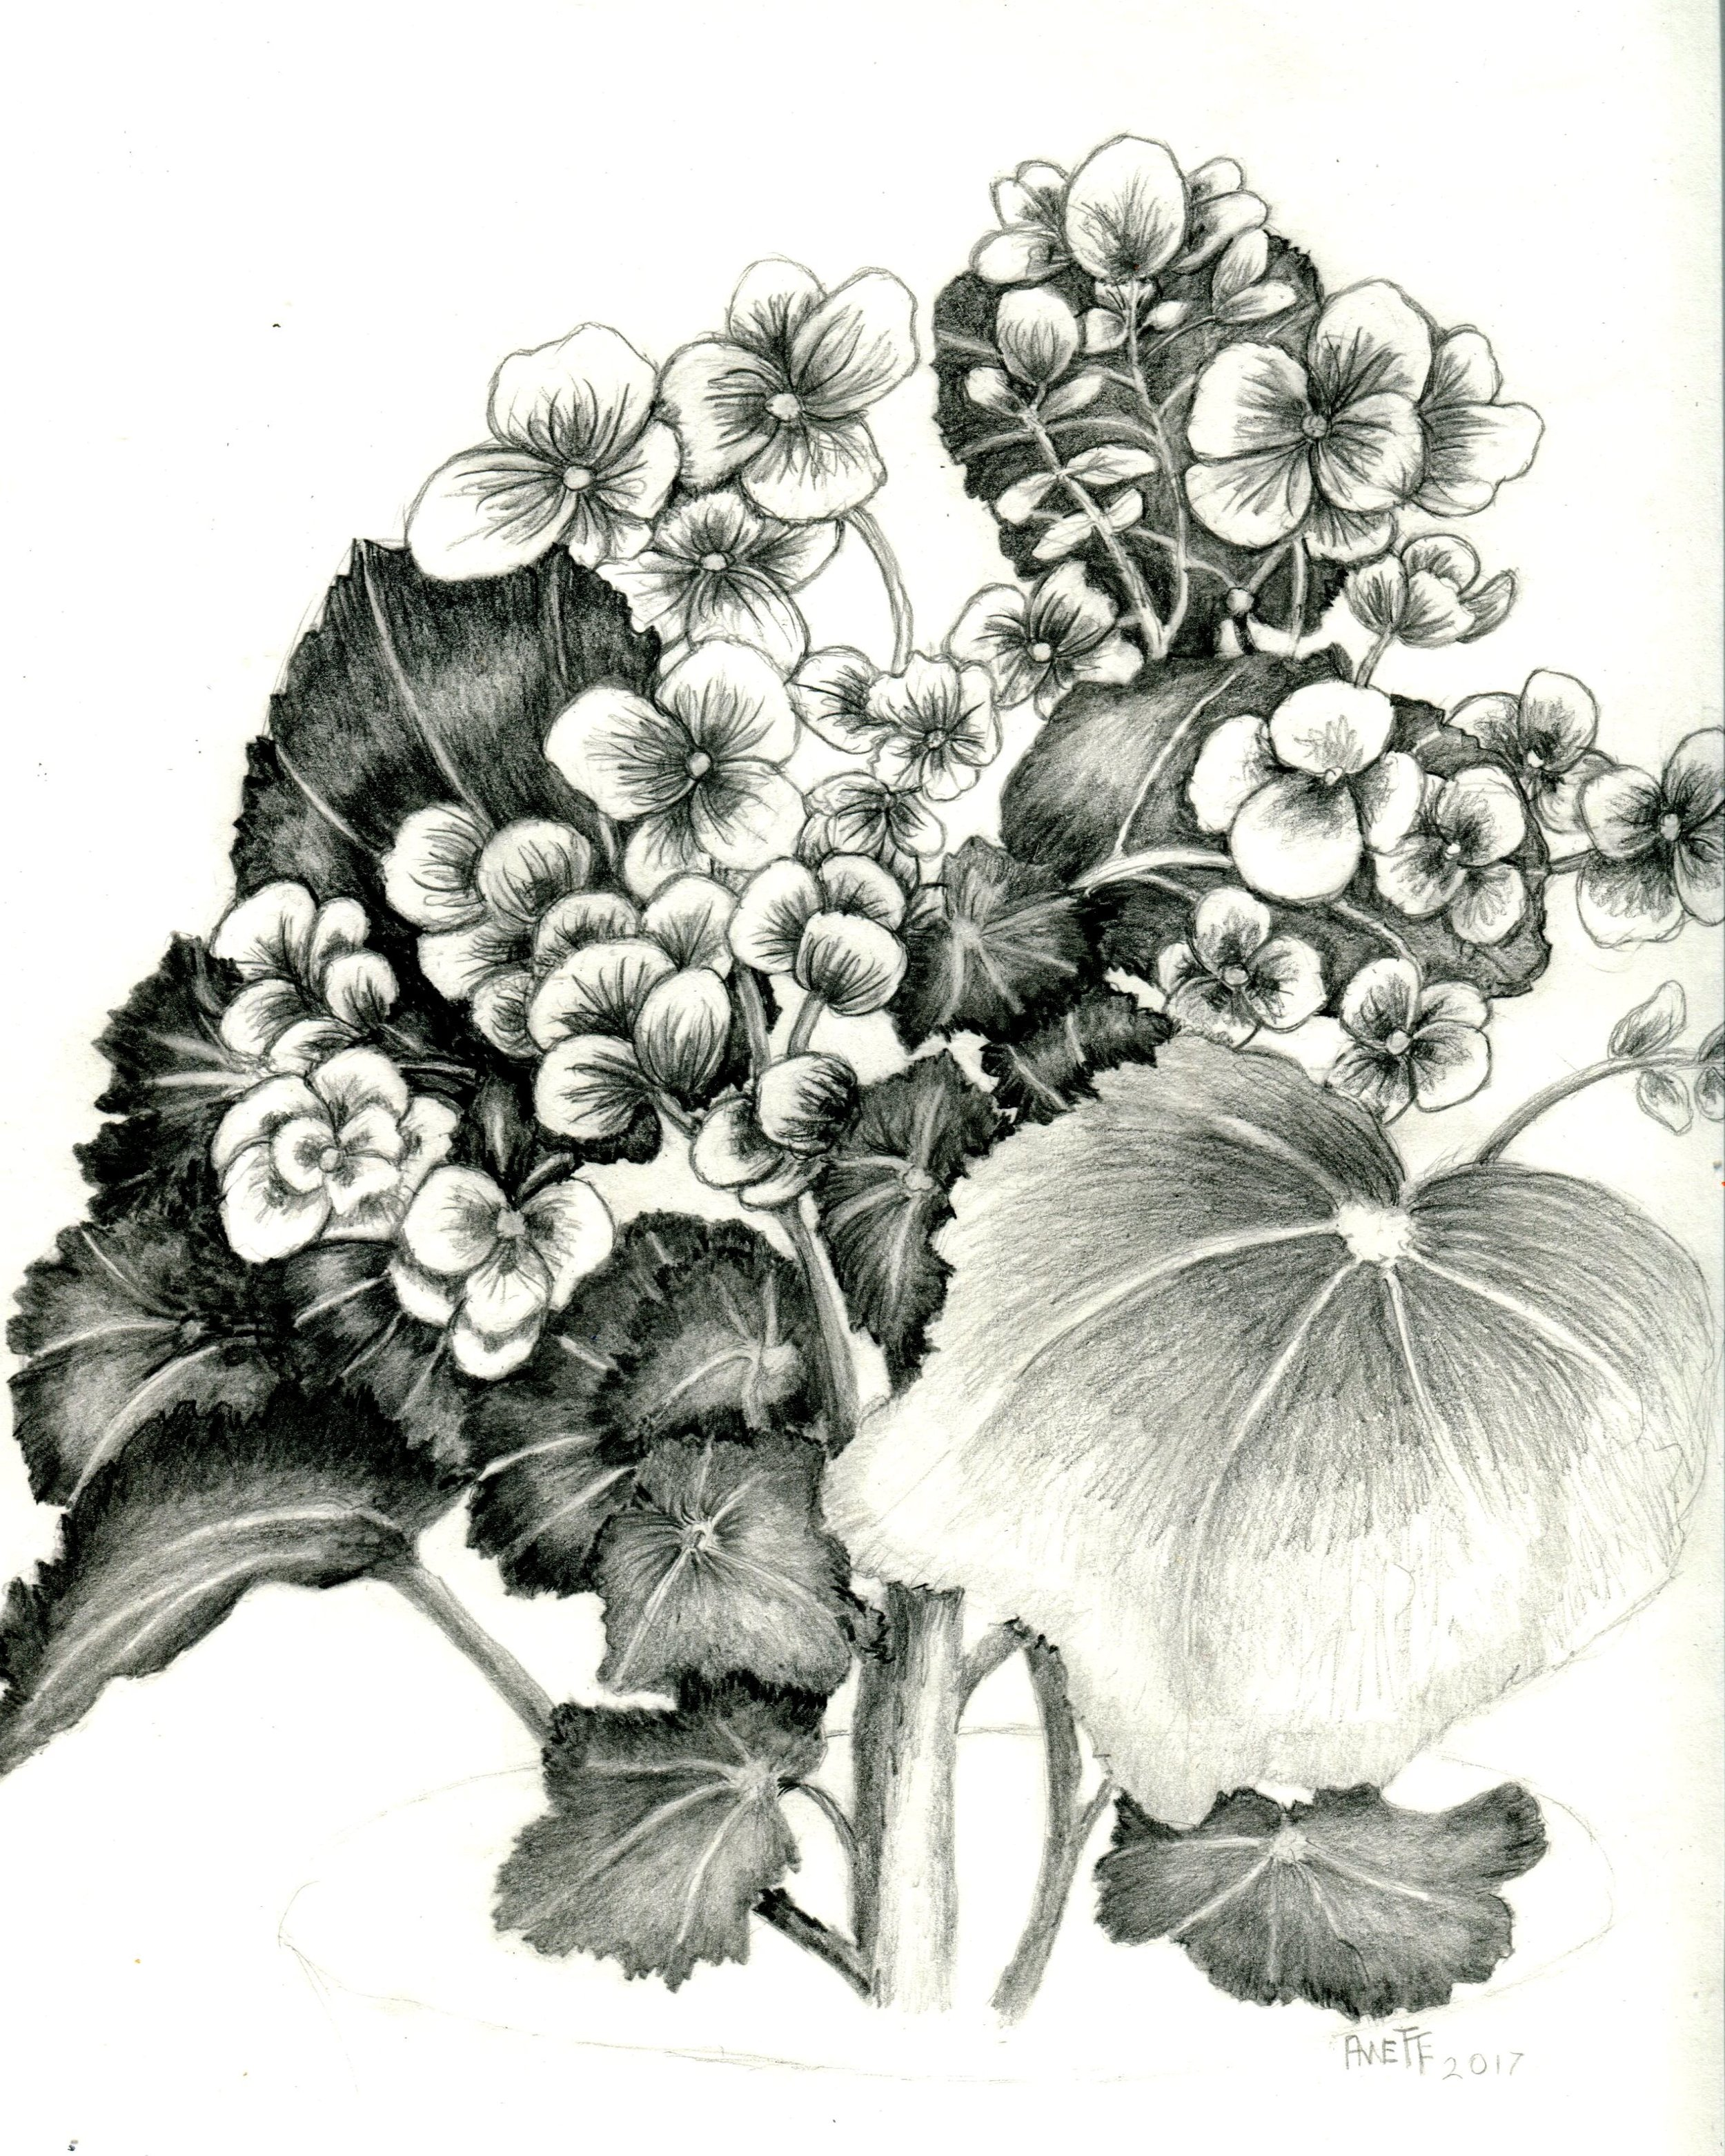 25A ANNETTE FARLAND, BEGONIA, GRAPHITE ON PAPER